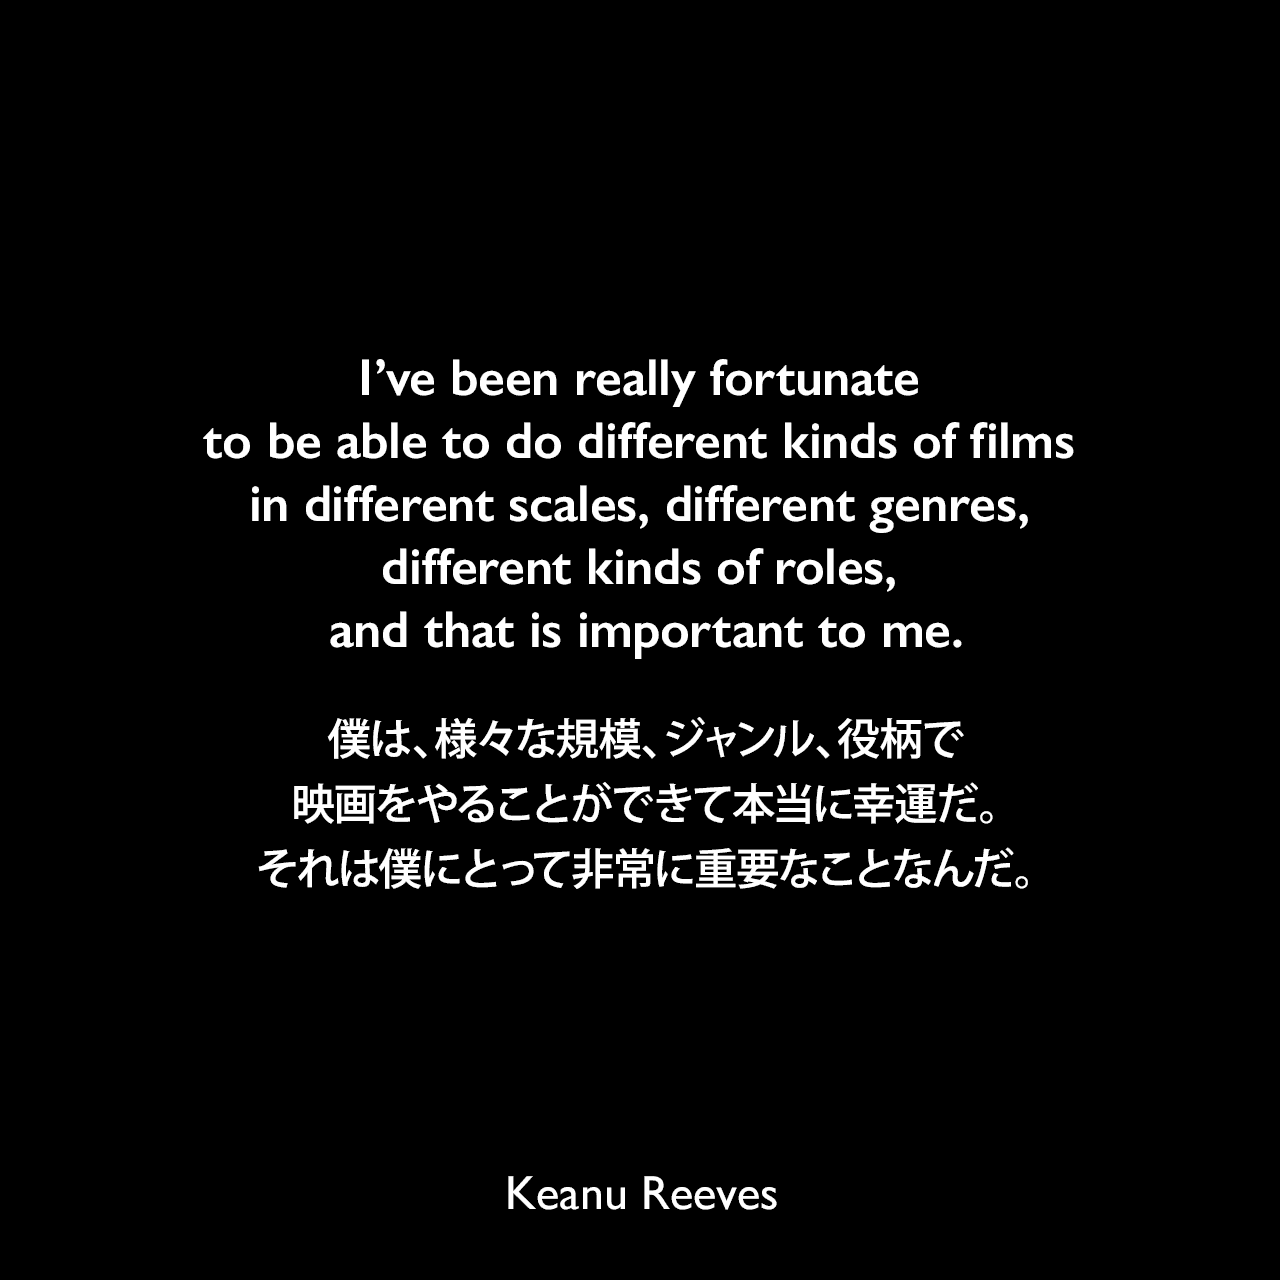 I've been really fortunate to be able to do different kinds of films in different scales, different genres, different kinds of roles, and that is important to me.僕は、様々な規模、ジャンル、役柄で映画をやることができて本当に幸運だ。それは僕にとって非常に重要なことなんだ。Keanu Reeves